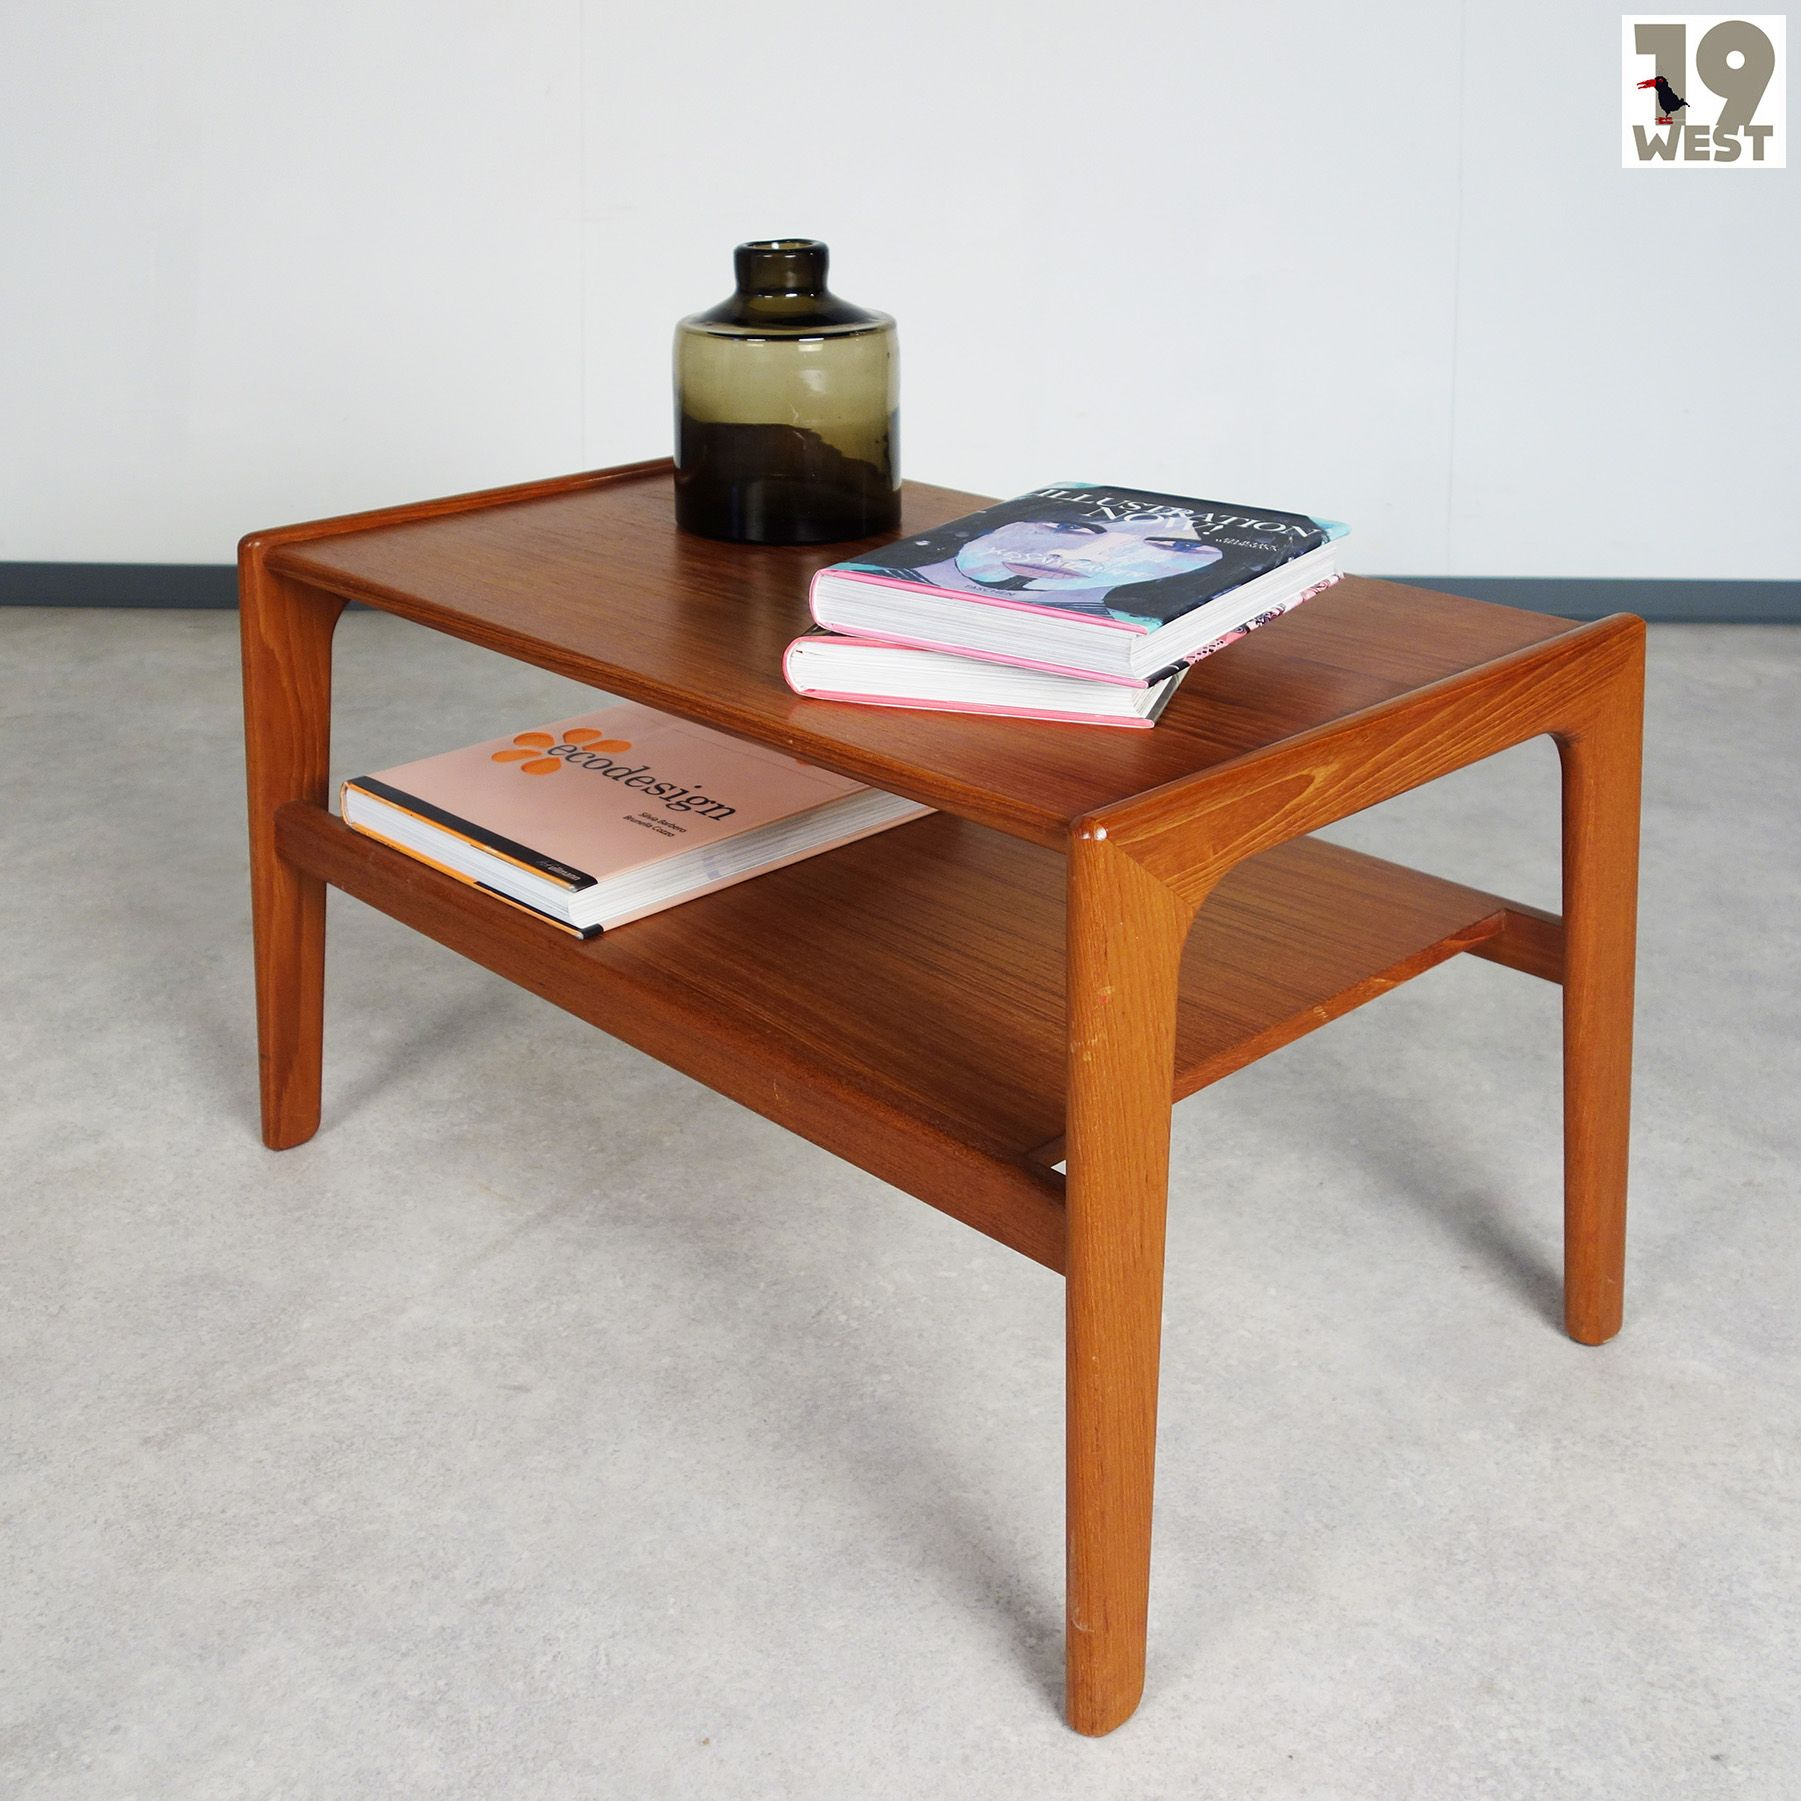 Sold To Boston A Teak Coffee Table Attributed To Arne Wahl Iversen 19west Vinatge Design Danishdesign Sixties Coffeetable Teak